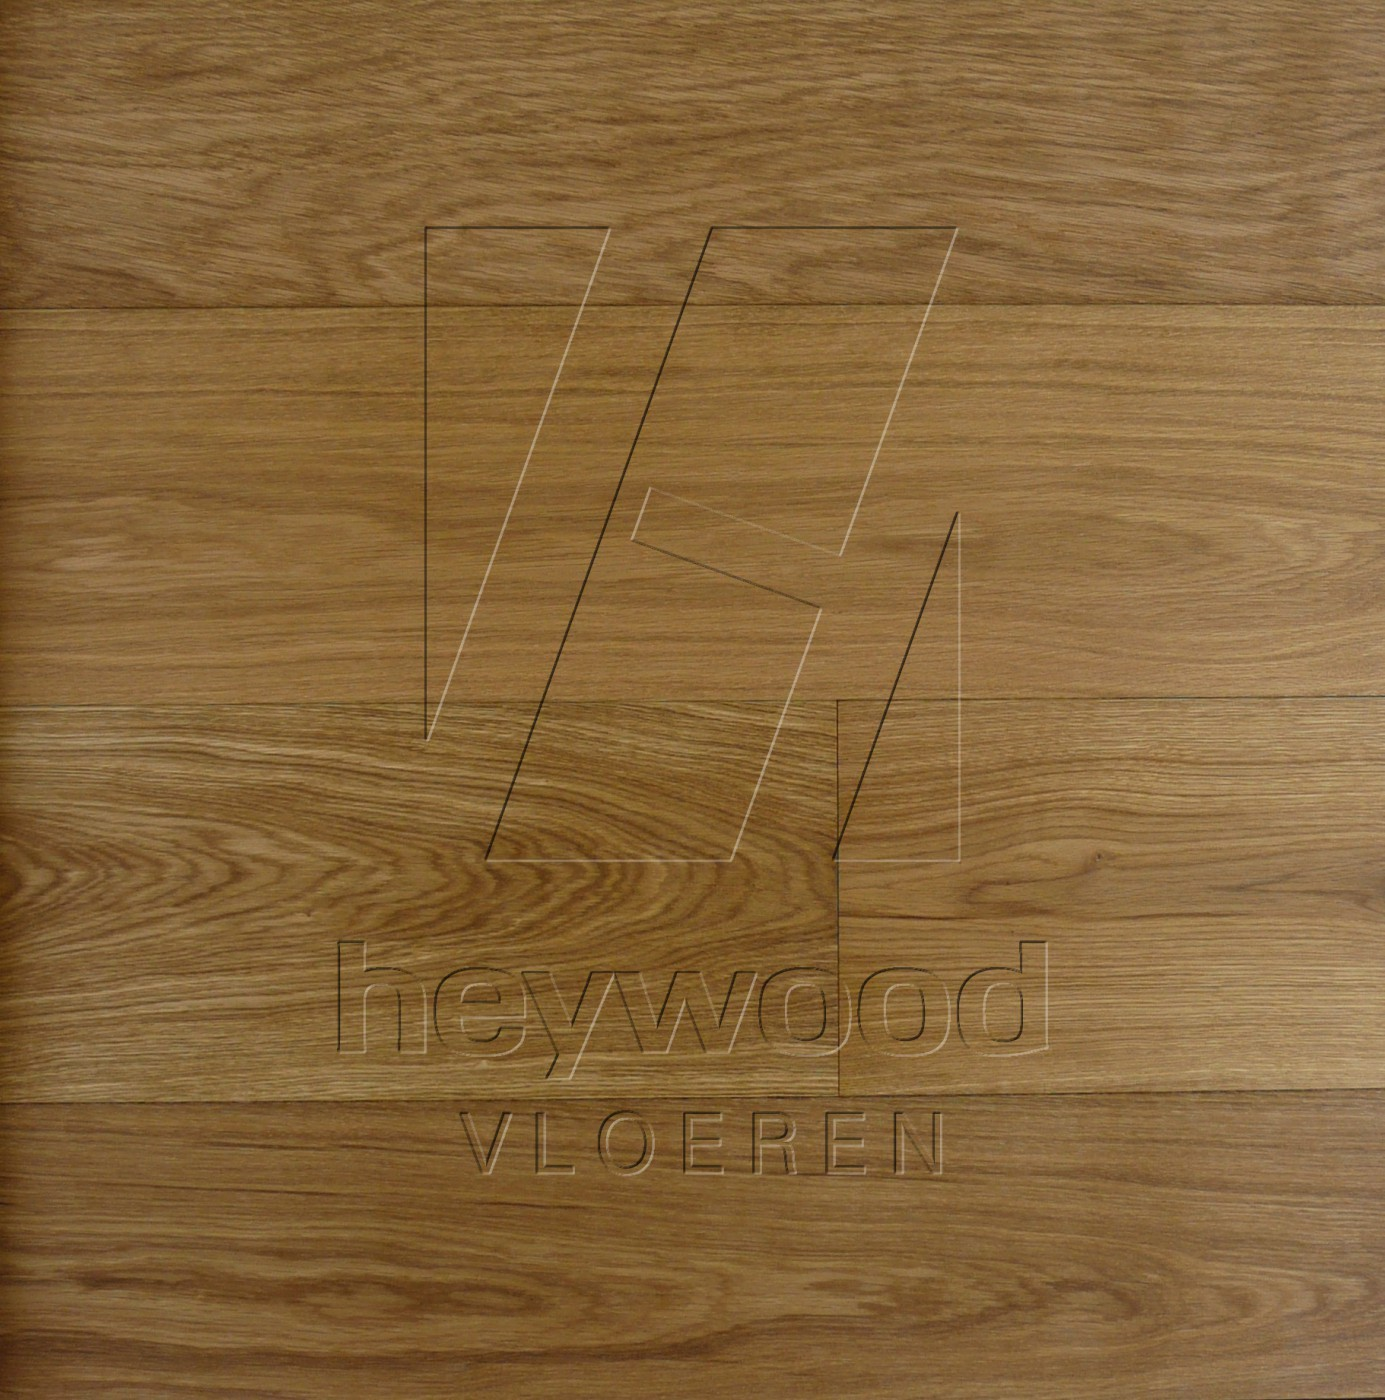 Rhine in European Oak Elegance of Bespoke Wooden Floors